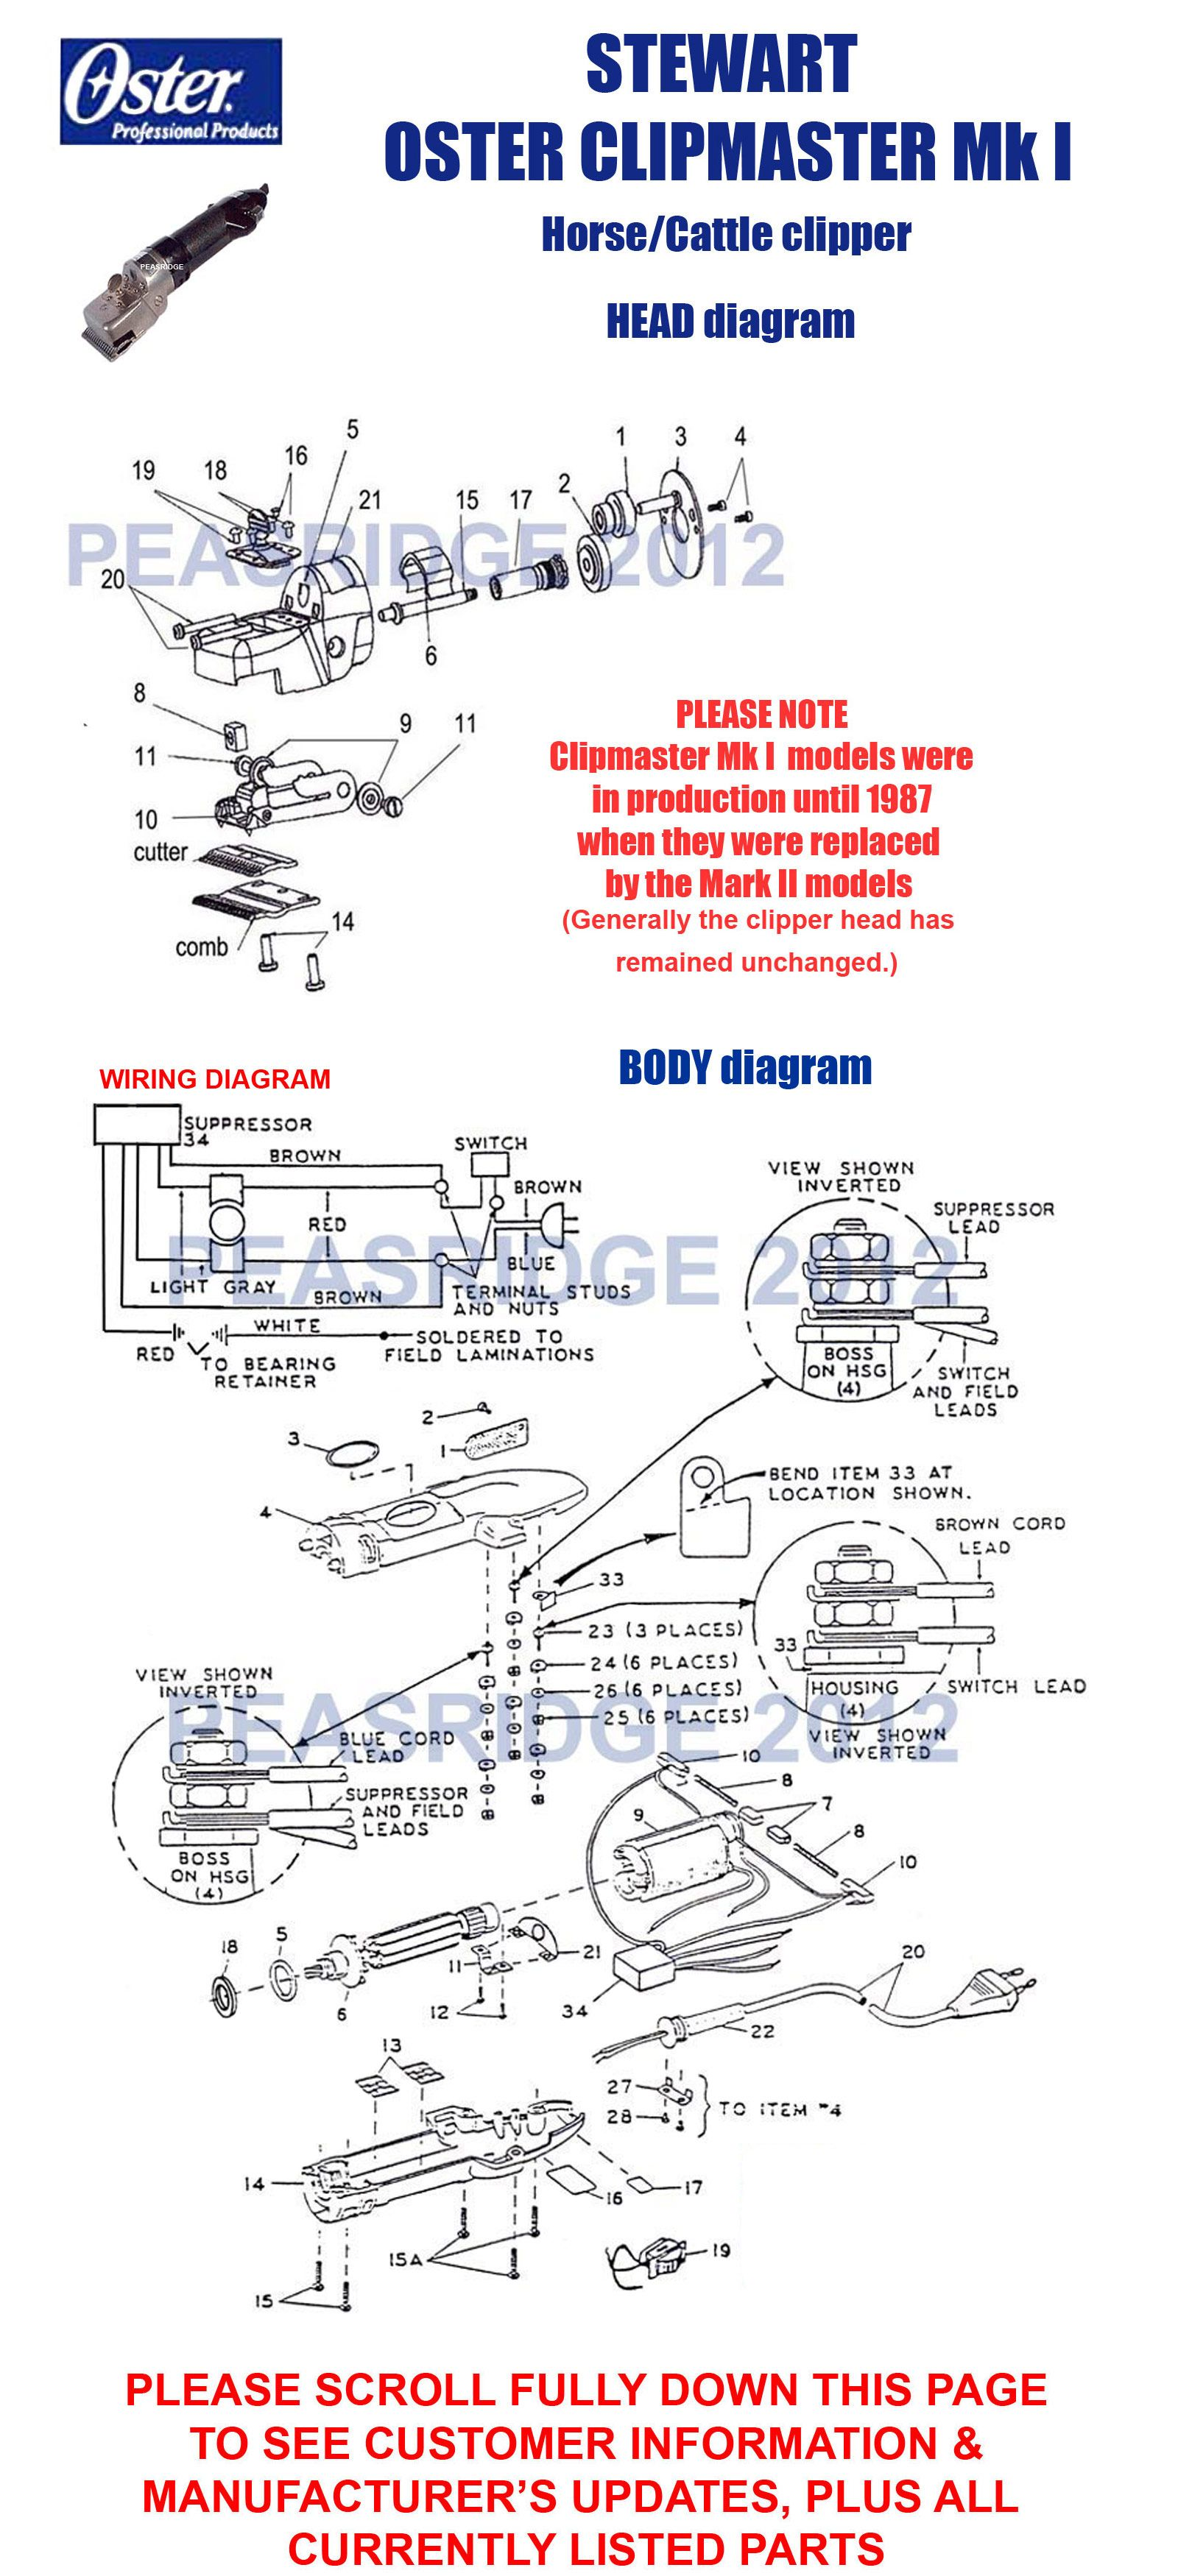 SO Clipmaster Mk I 1600 stewart oster peasridge oster clipper wiring diagram at bayanpartner.co